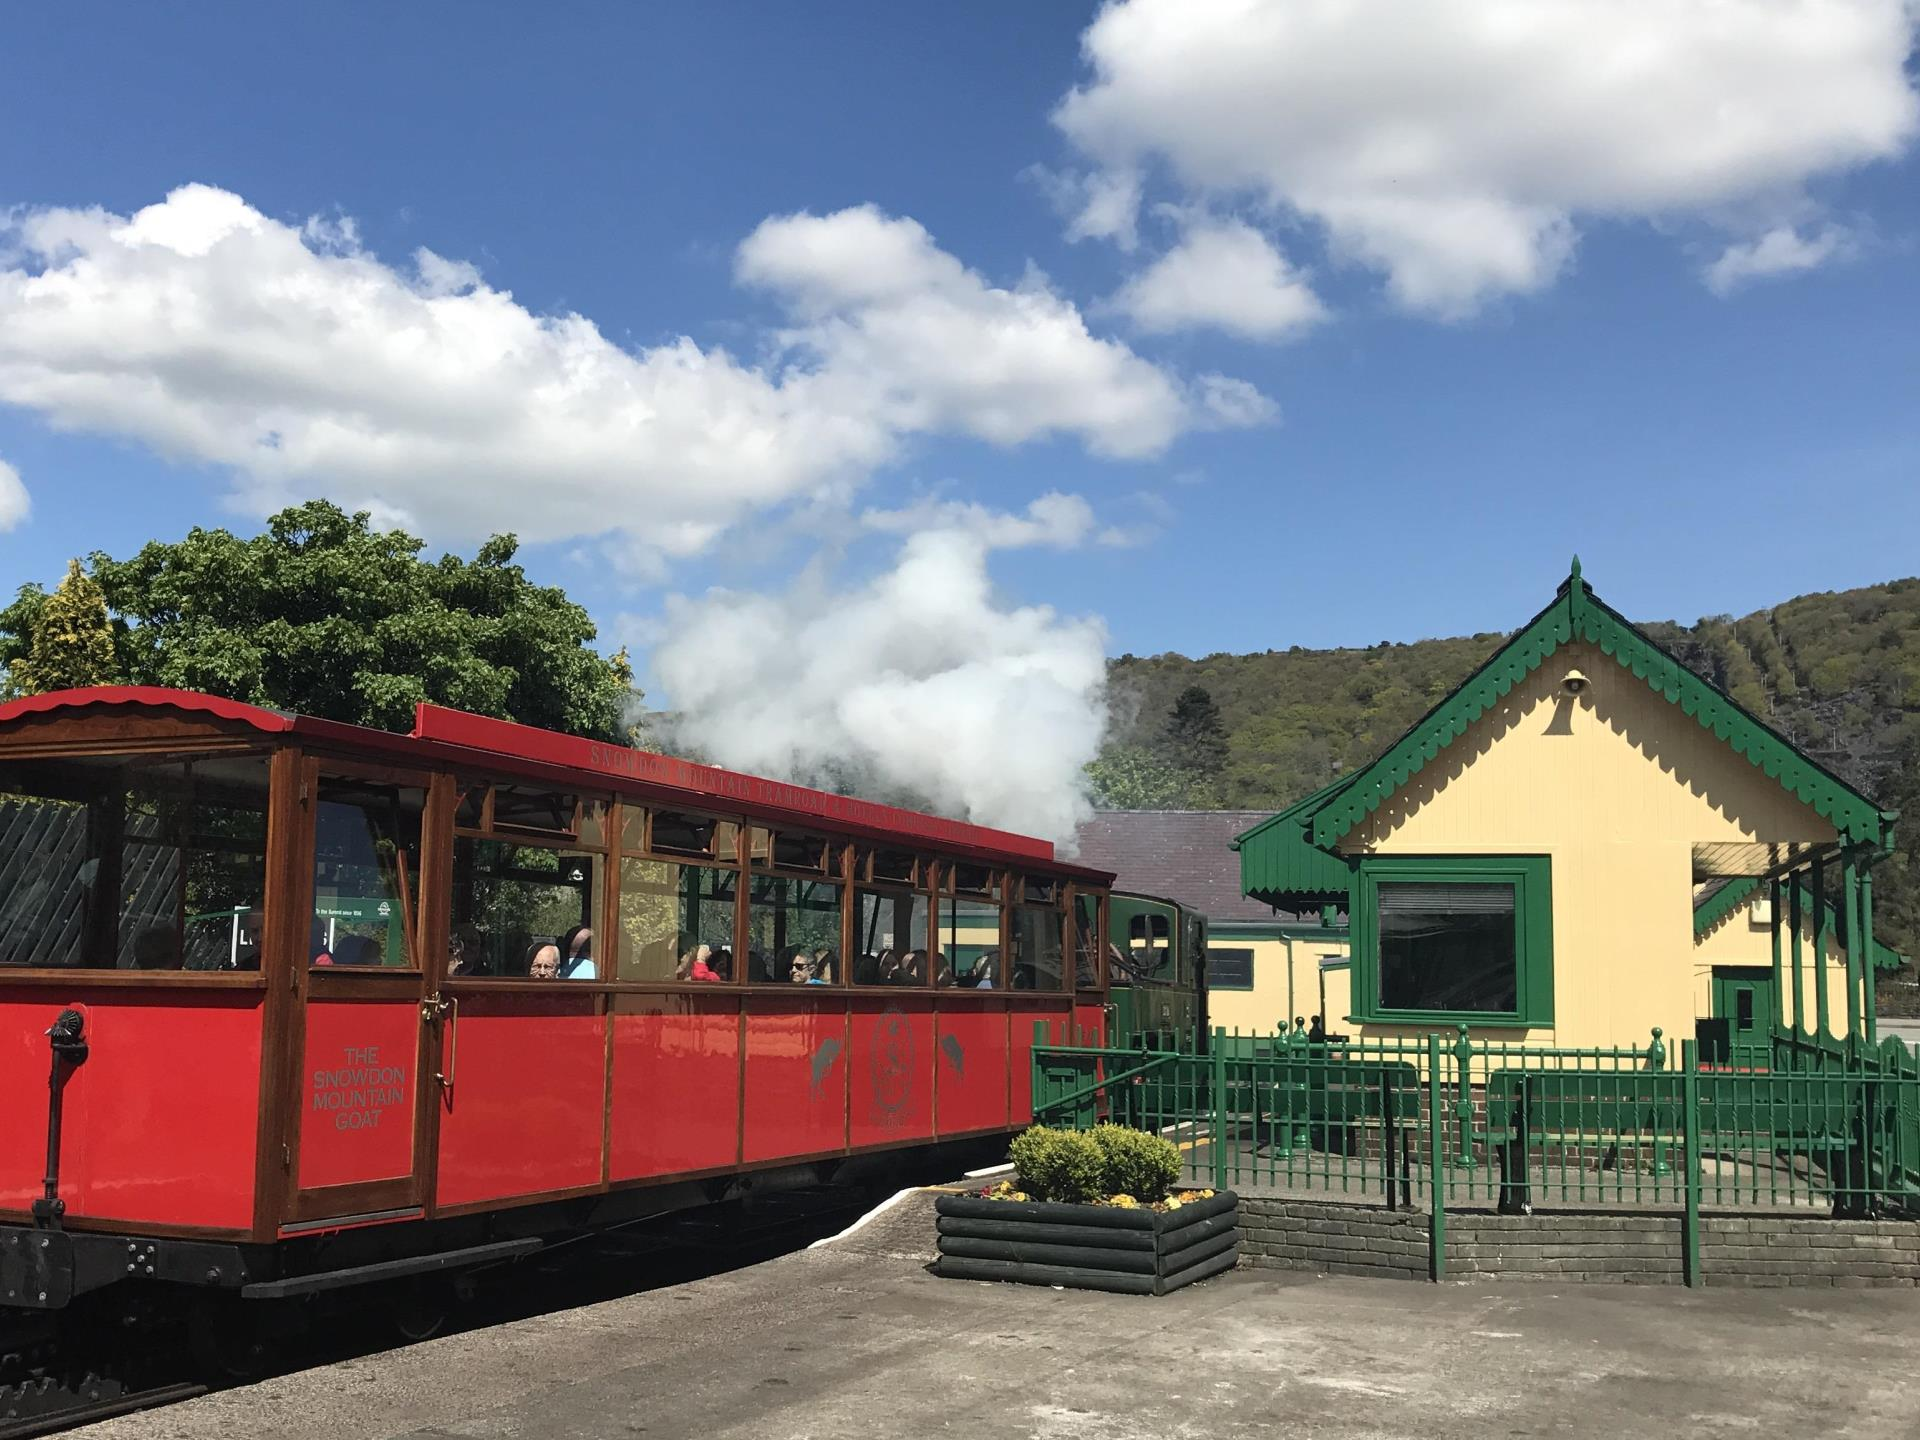 Steam train departing Llanberis Station